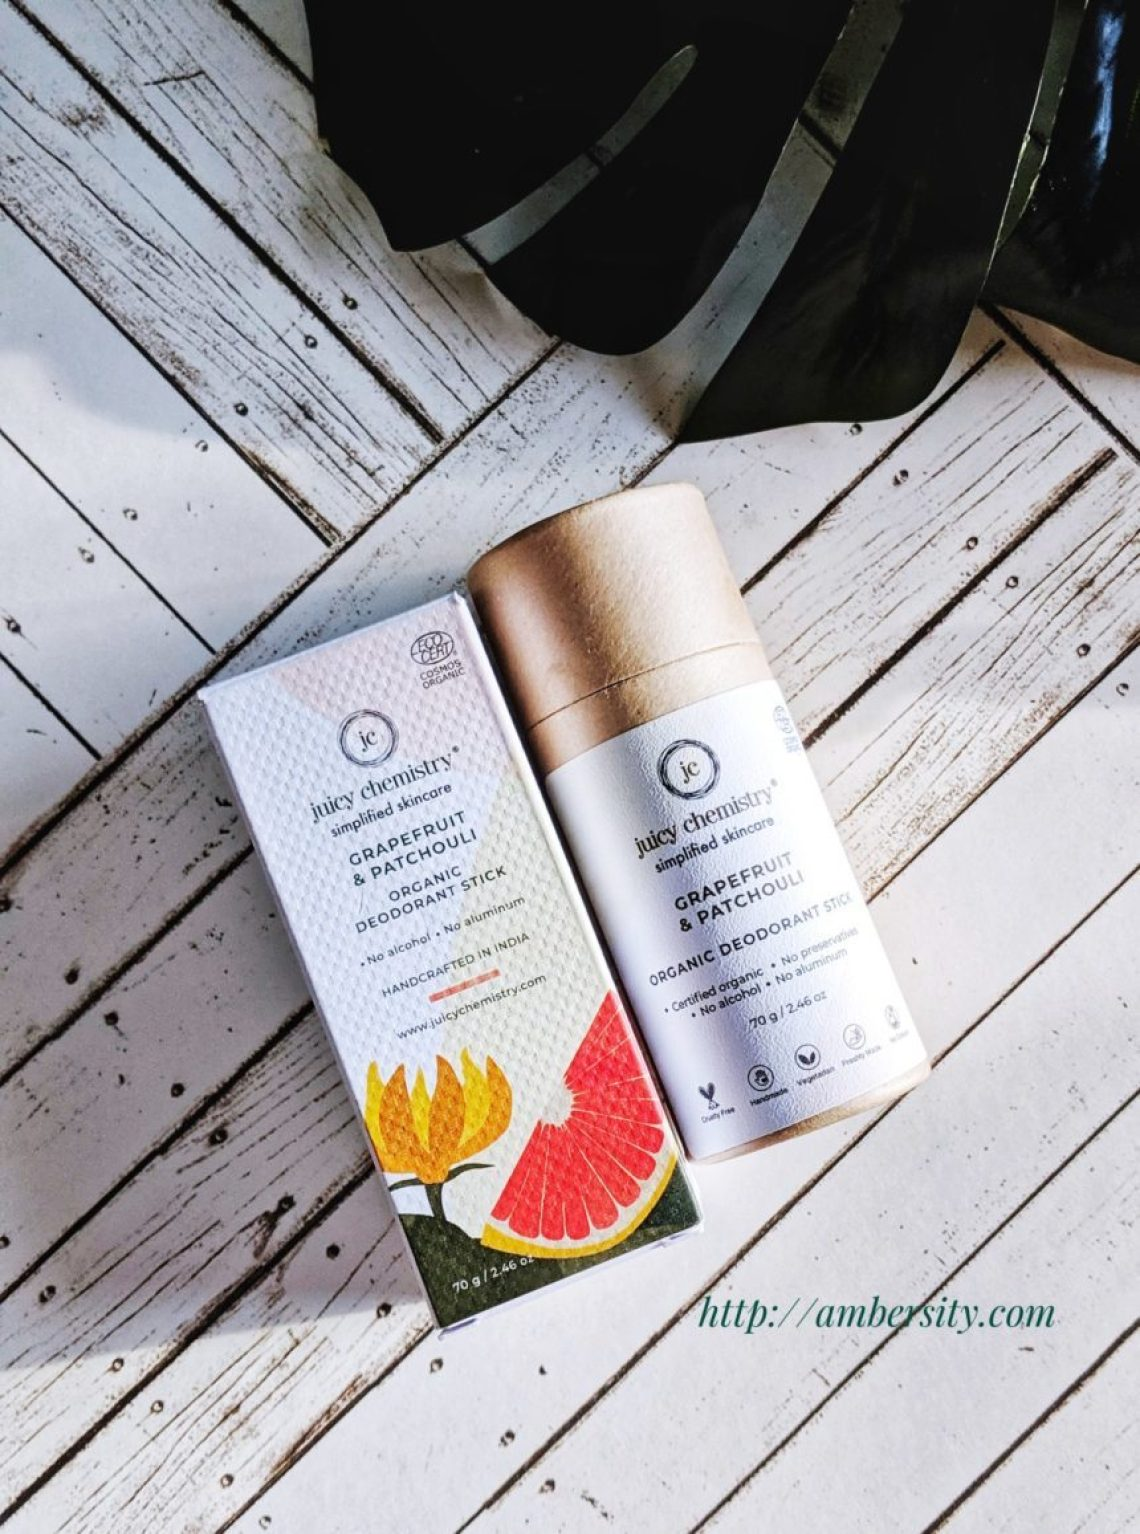 Organic Deodorants are Way to Go! Juicy Chemistry Grapefruit and Patchouli Organic Deo Stick: Review